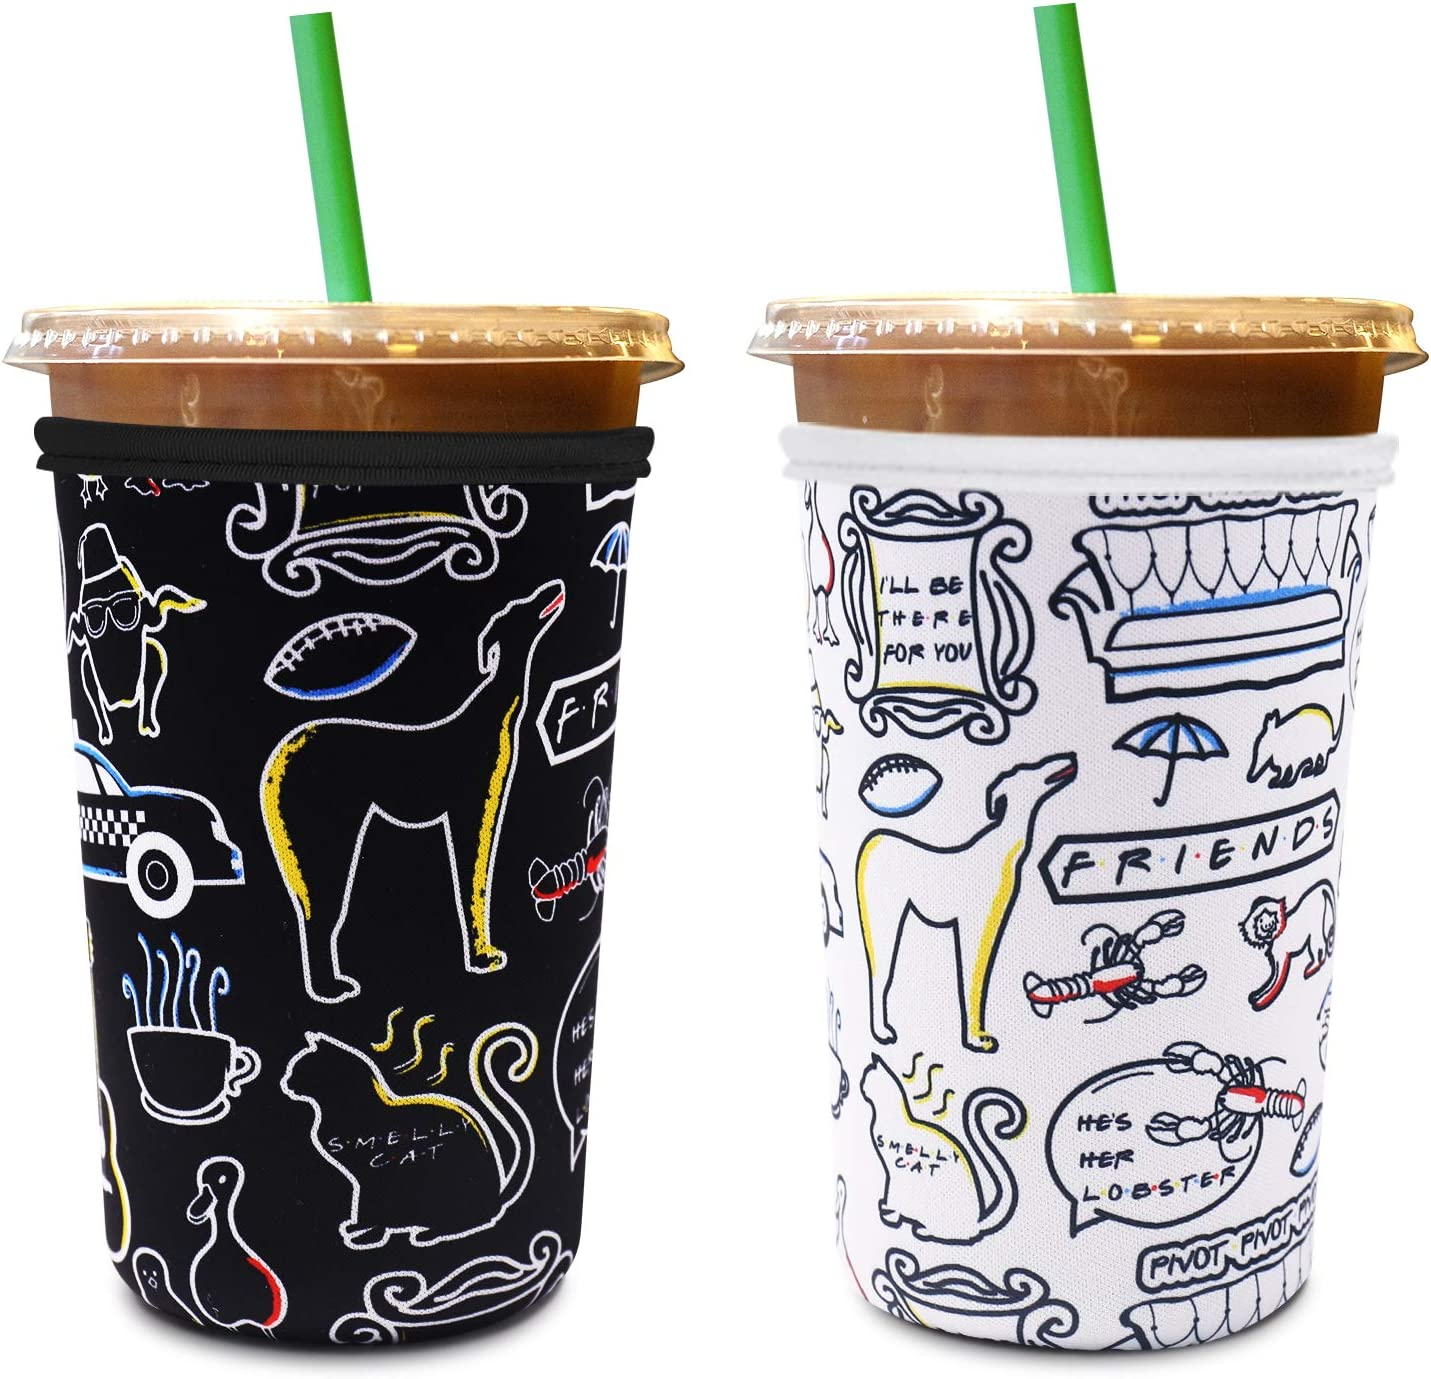 Reusable Friends Iced Coffee Sleeves White &Black Friends TV Show Neoprene Cup Cover Sleeve Beverages Insulator Holder for Starbucks, McDonalds, Dunkin Coffee 2-Pack